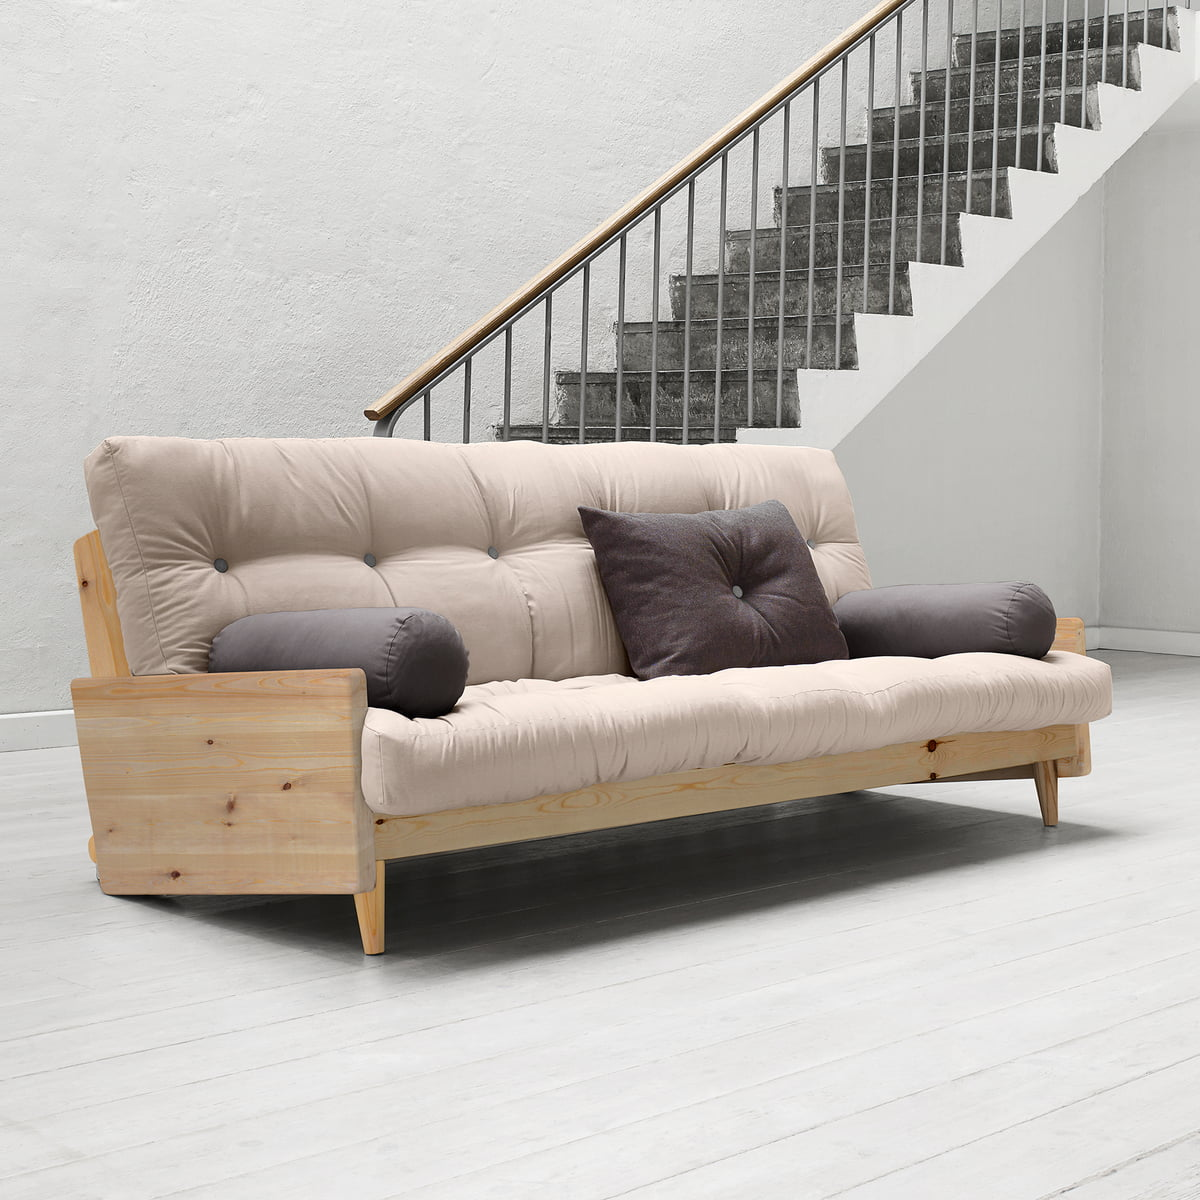 Groovy Karup Design Indie Sofa Bed Pine Natural Beige 747 Machost Co Dining Chair Design Ideas Machostcouk